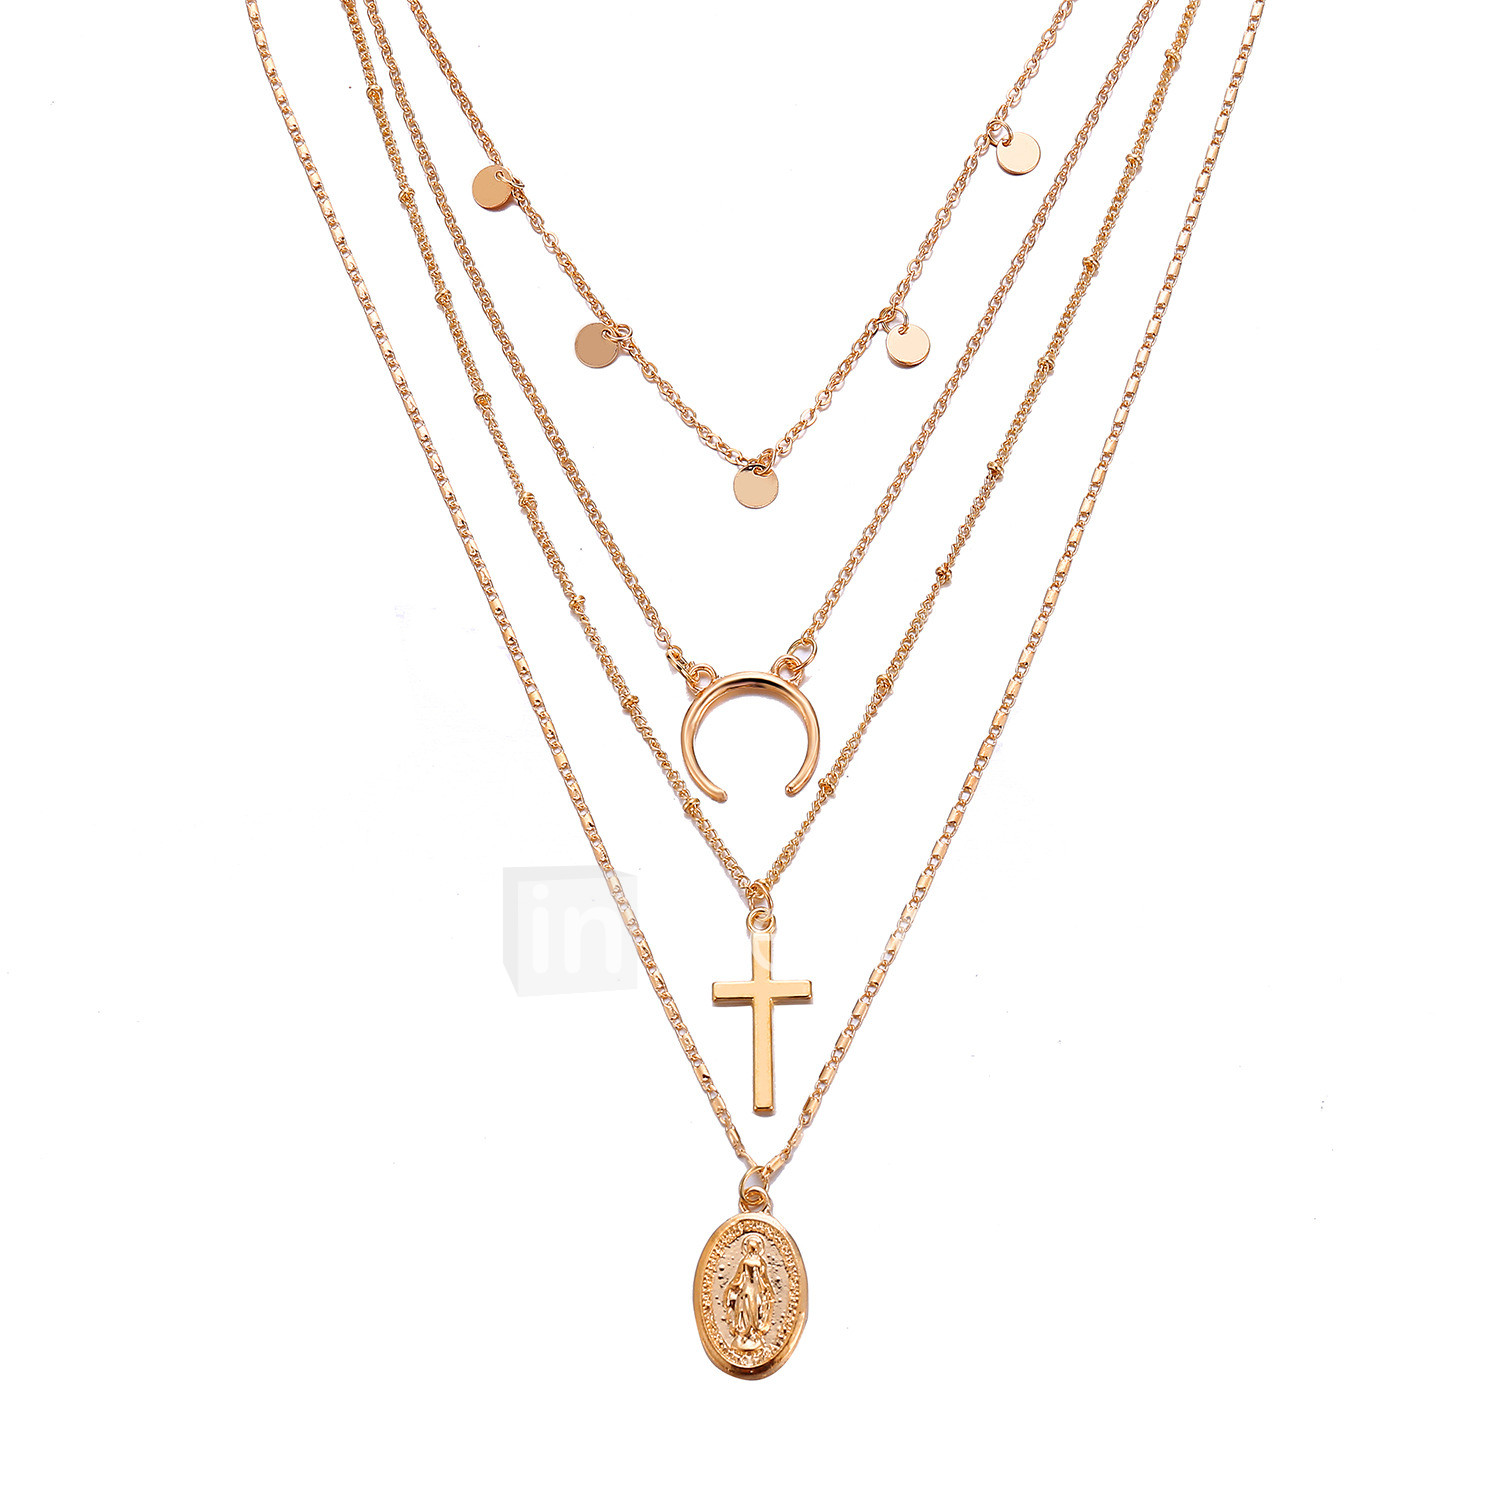 aee6e549bdb0aa Women's Layered Necklace Layered Cross Moon double horn European Trendy  Fashion Chrome Gold 60+6